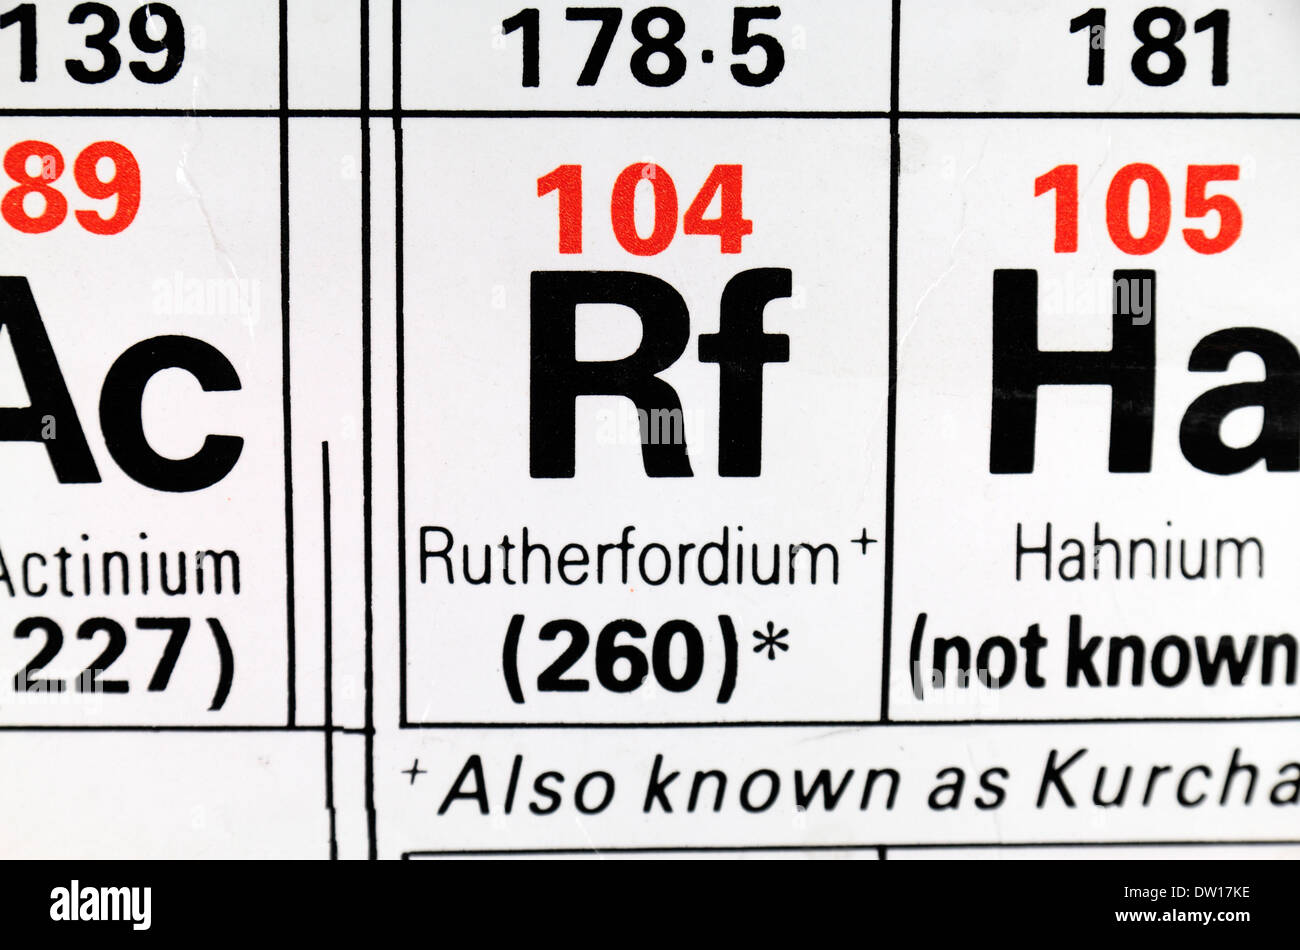 Rutherfordium rf as it appears on the periodic table stock photo rutherfordium rf as it appears on the periodic table gamestrikefo Image collections